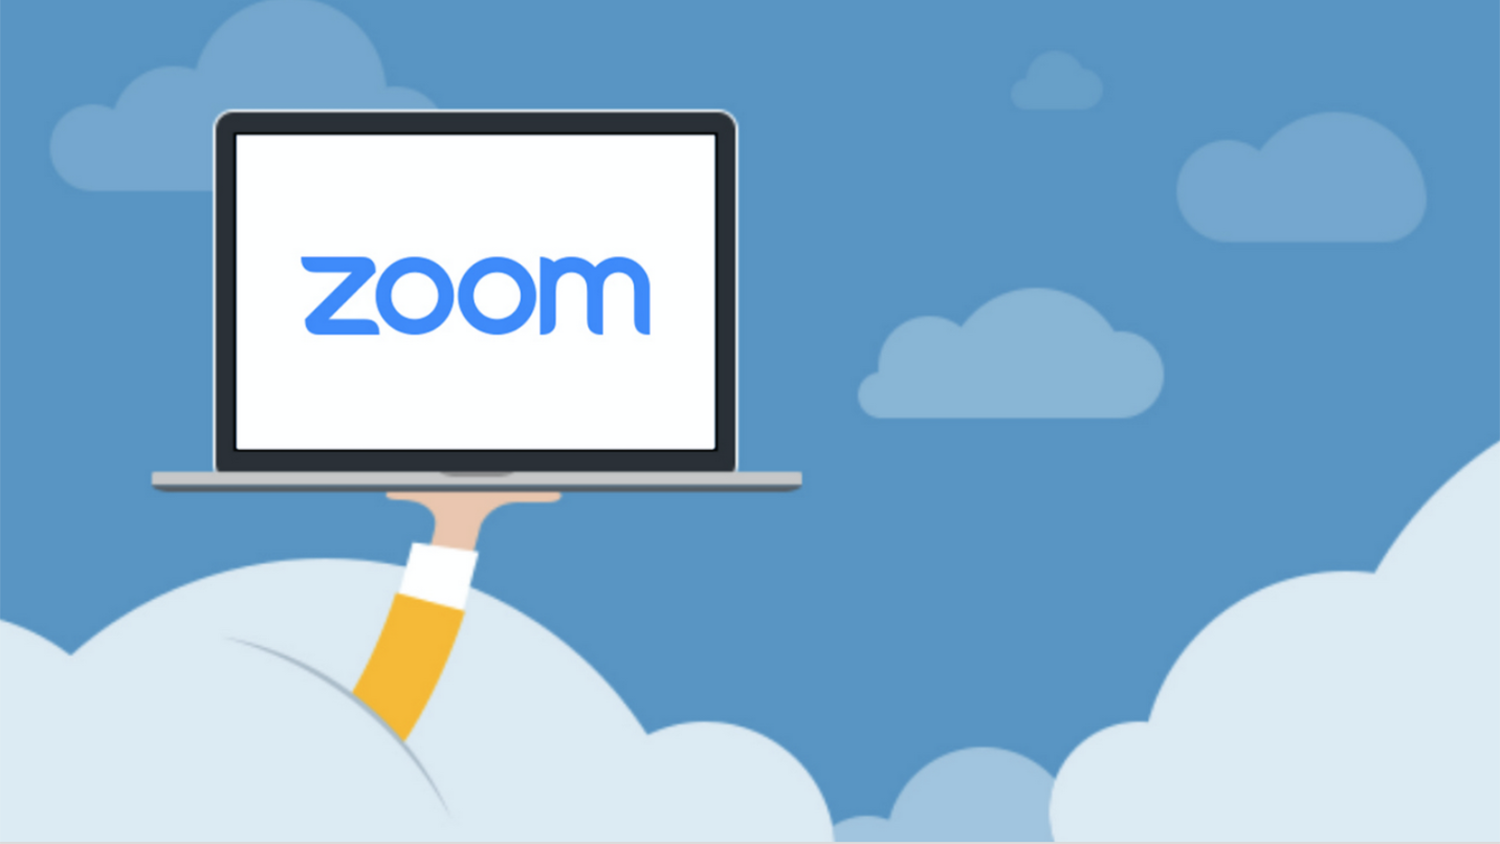 Zoom conferencing tool cartoon of a computer on a cloud